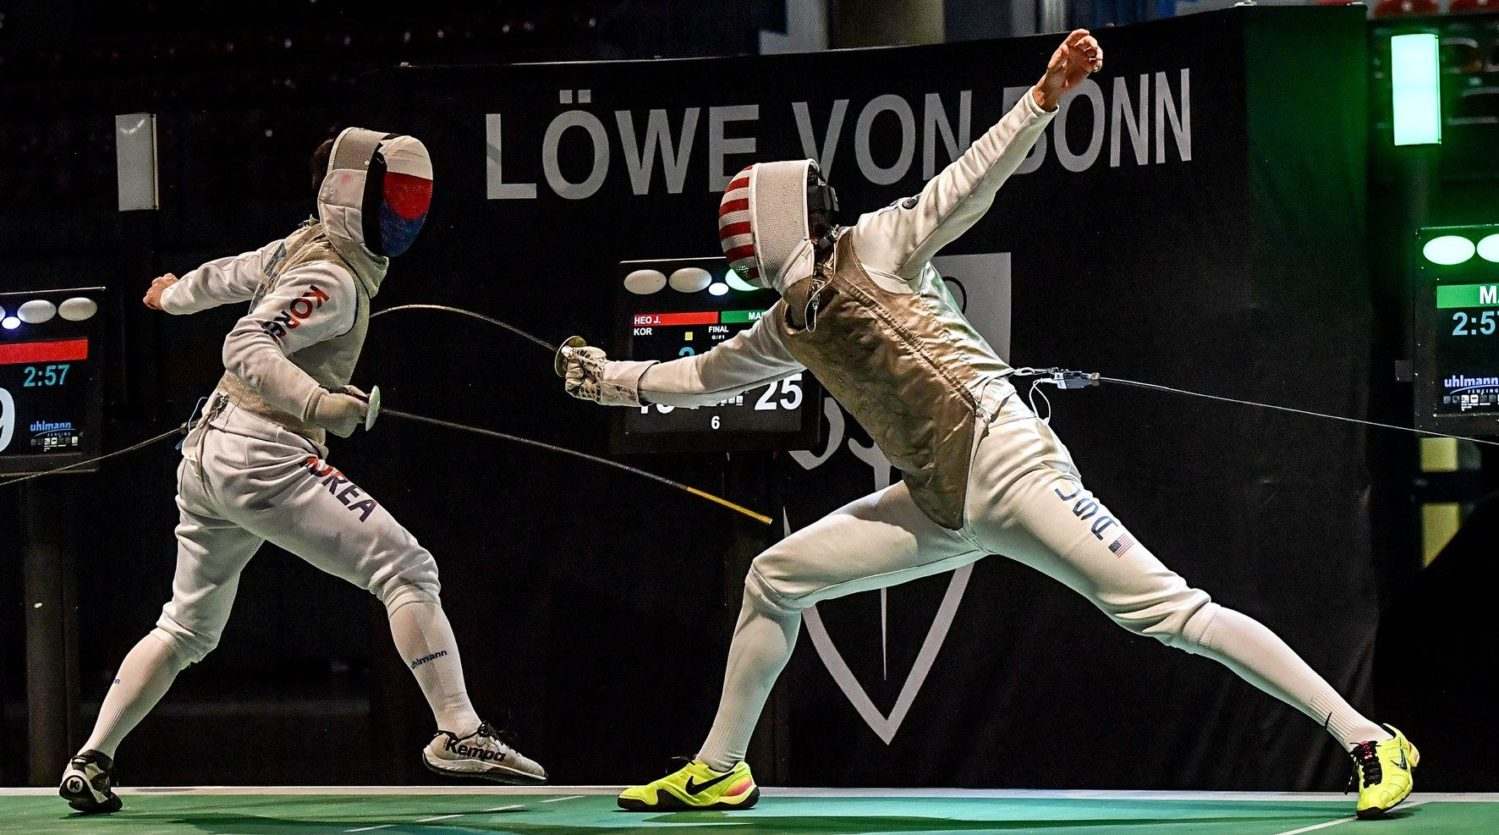 Korea vs USA; Bonn Men's Foil Finals; c/o FIE.org, Augusto Bizzi